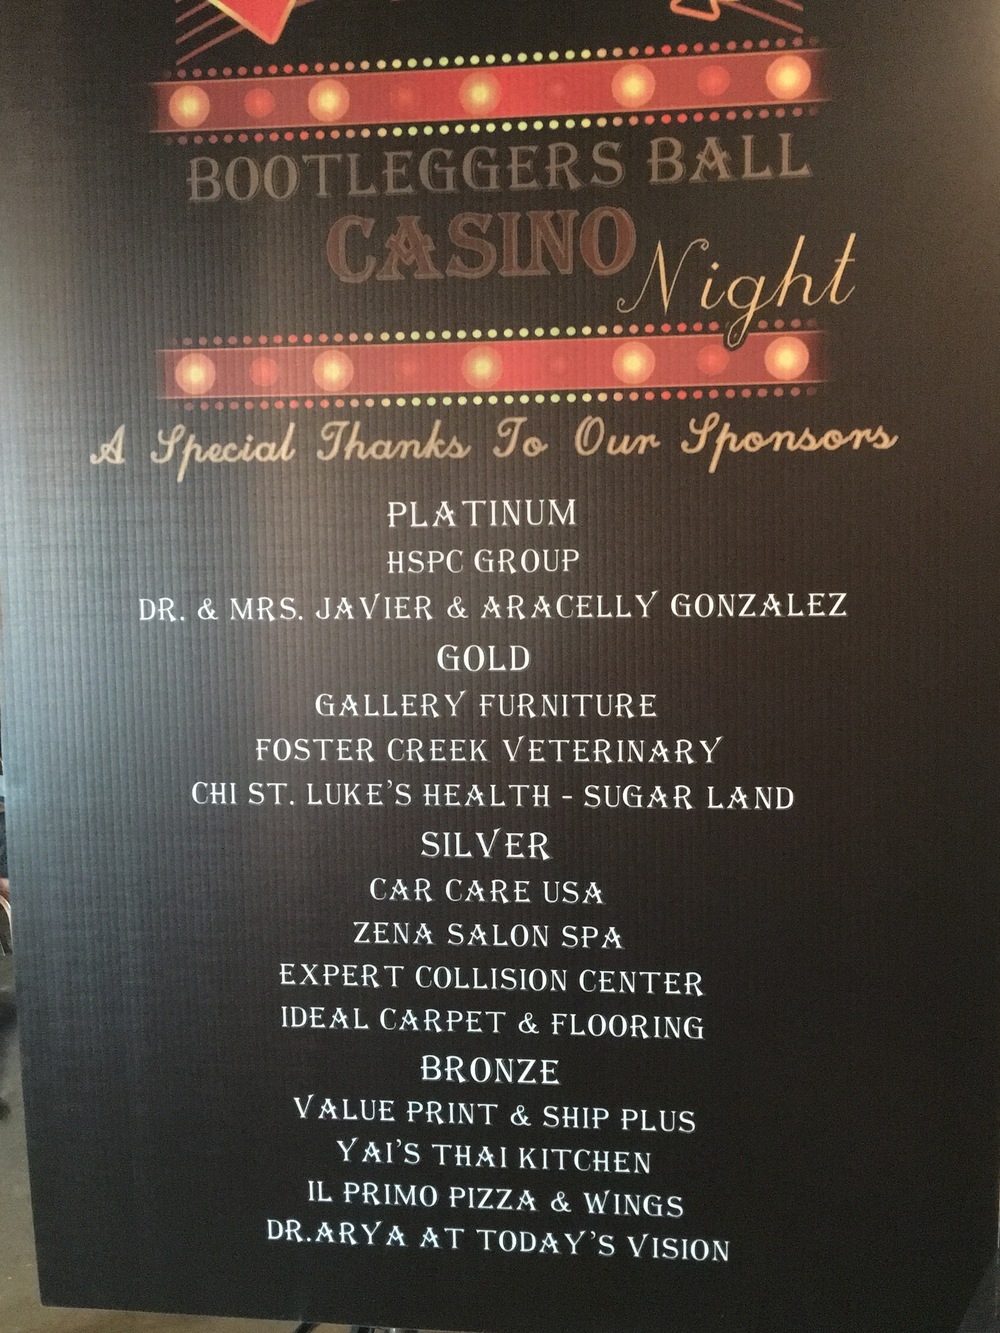 Bootlegger's Ball and Casino Night